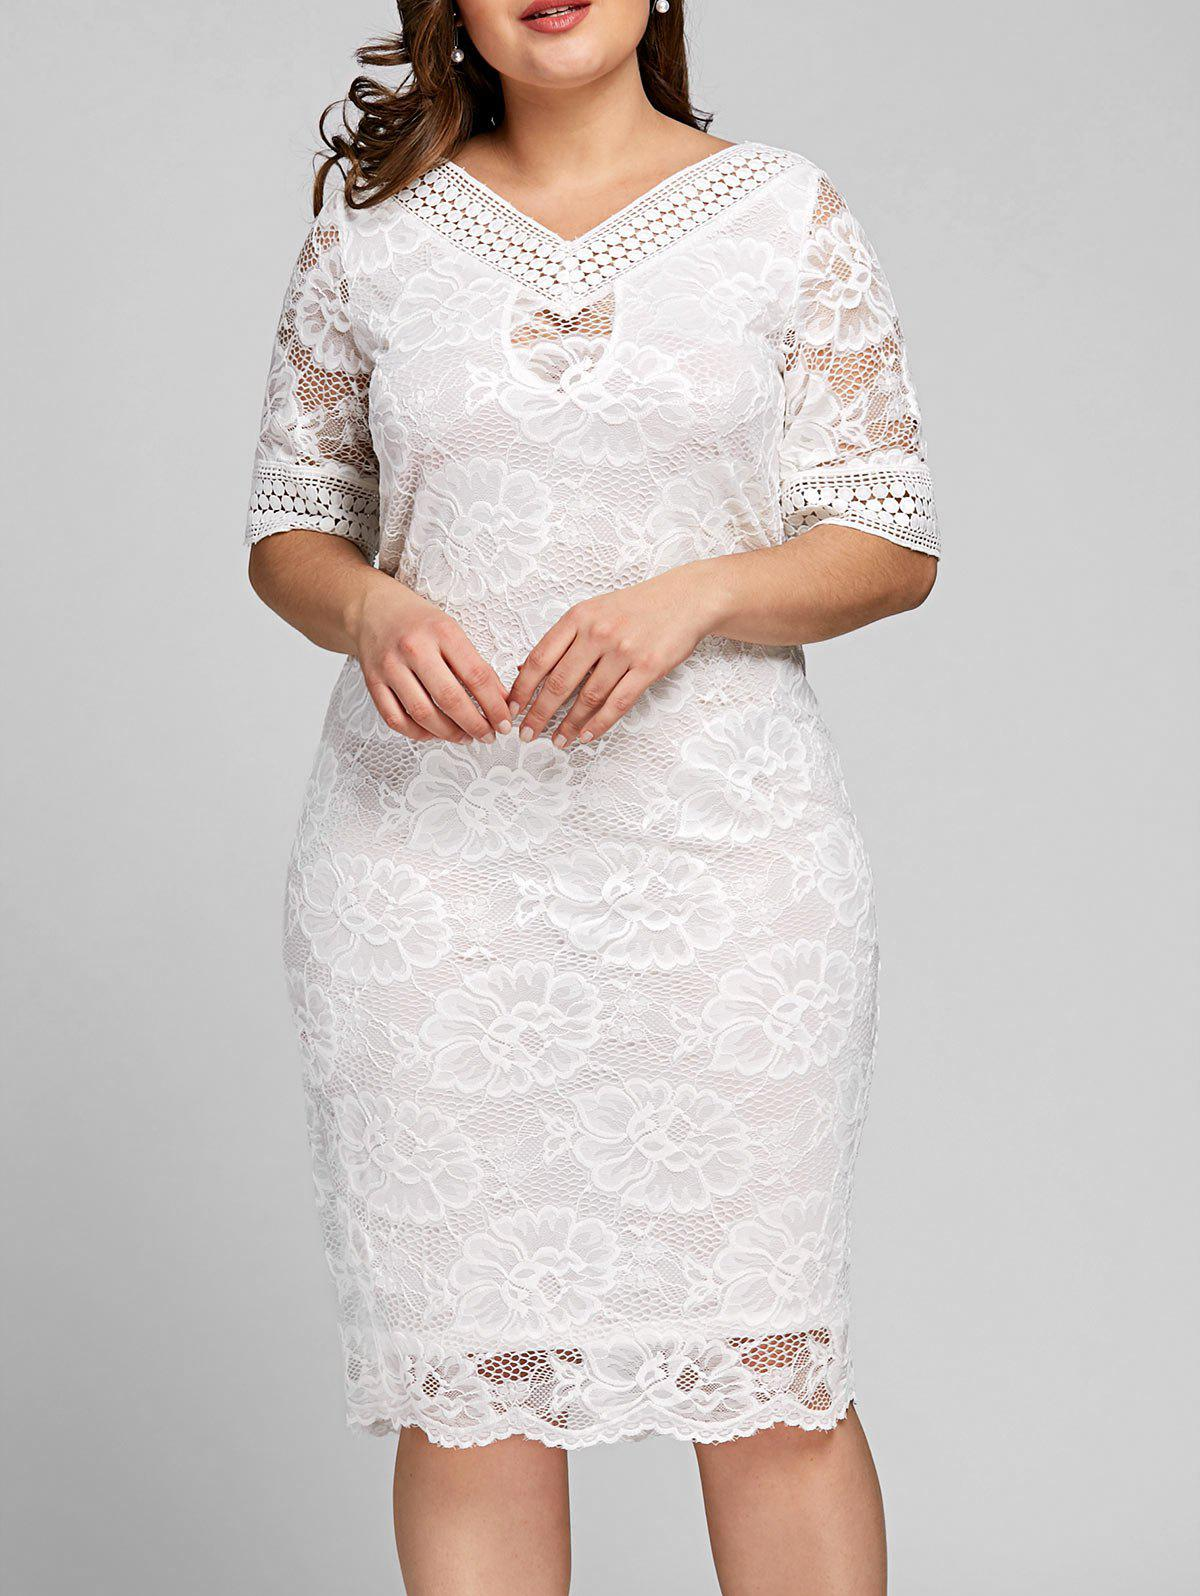 32% OFF] Plus Size V Neck Midi Lace Dress | Rosegal